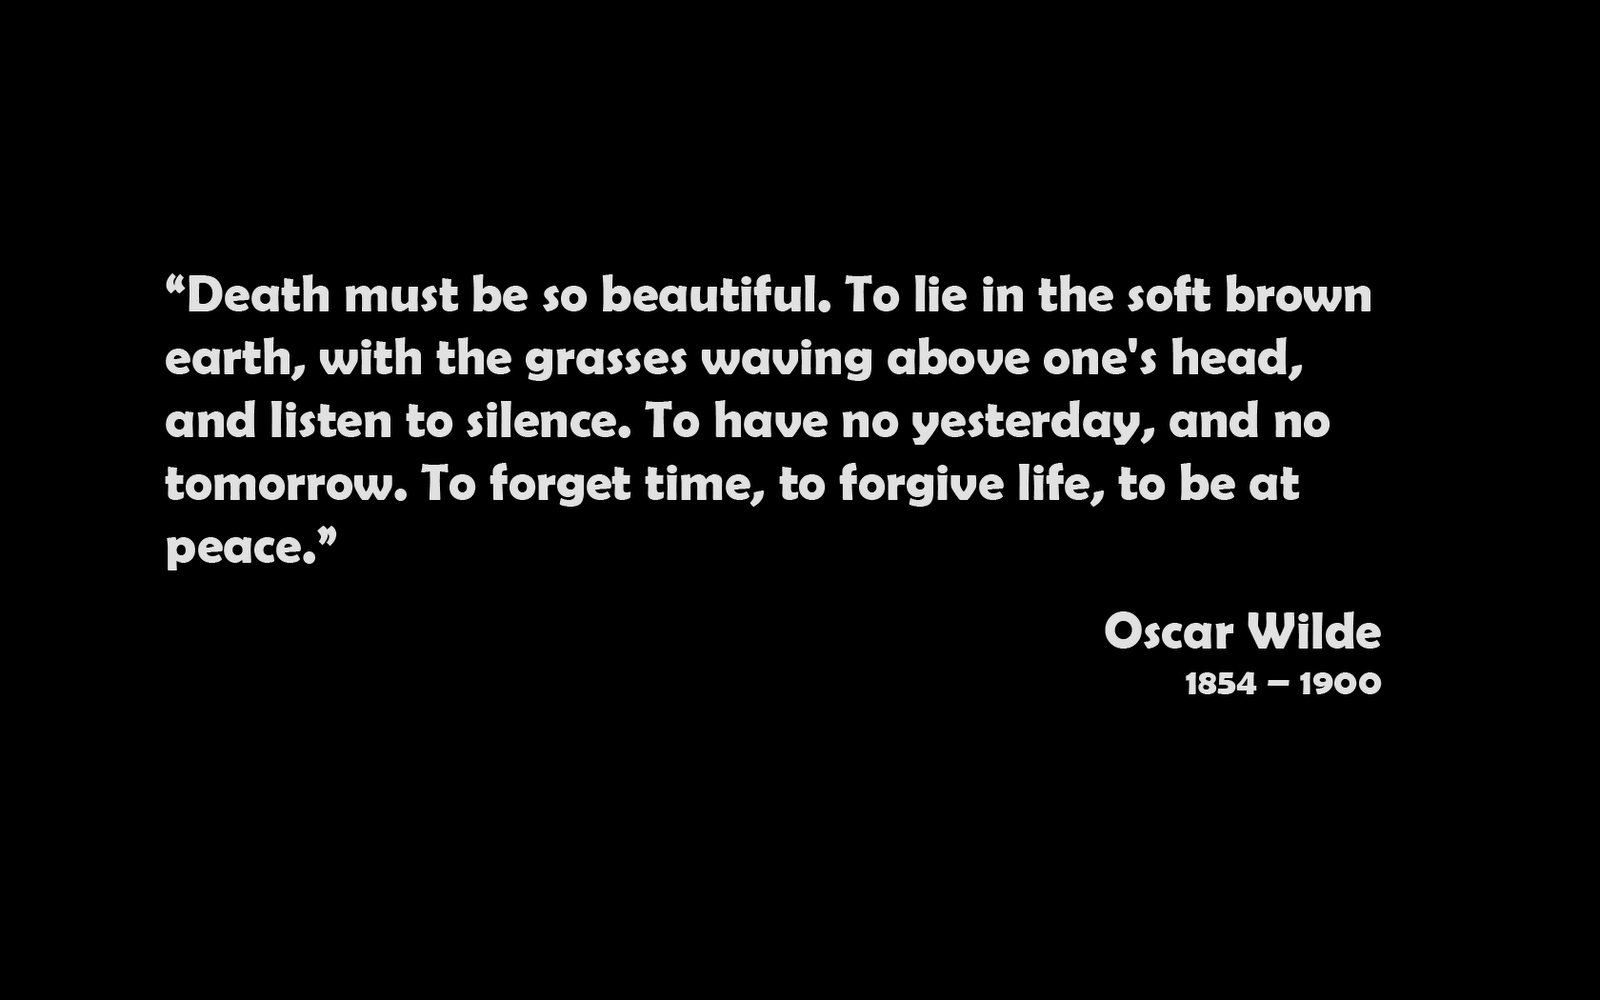 quotes_oscar_wilde_text_only_black_background_quote_desktop_1680x1050_wallpaper-342283.png